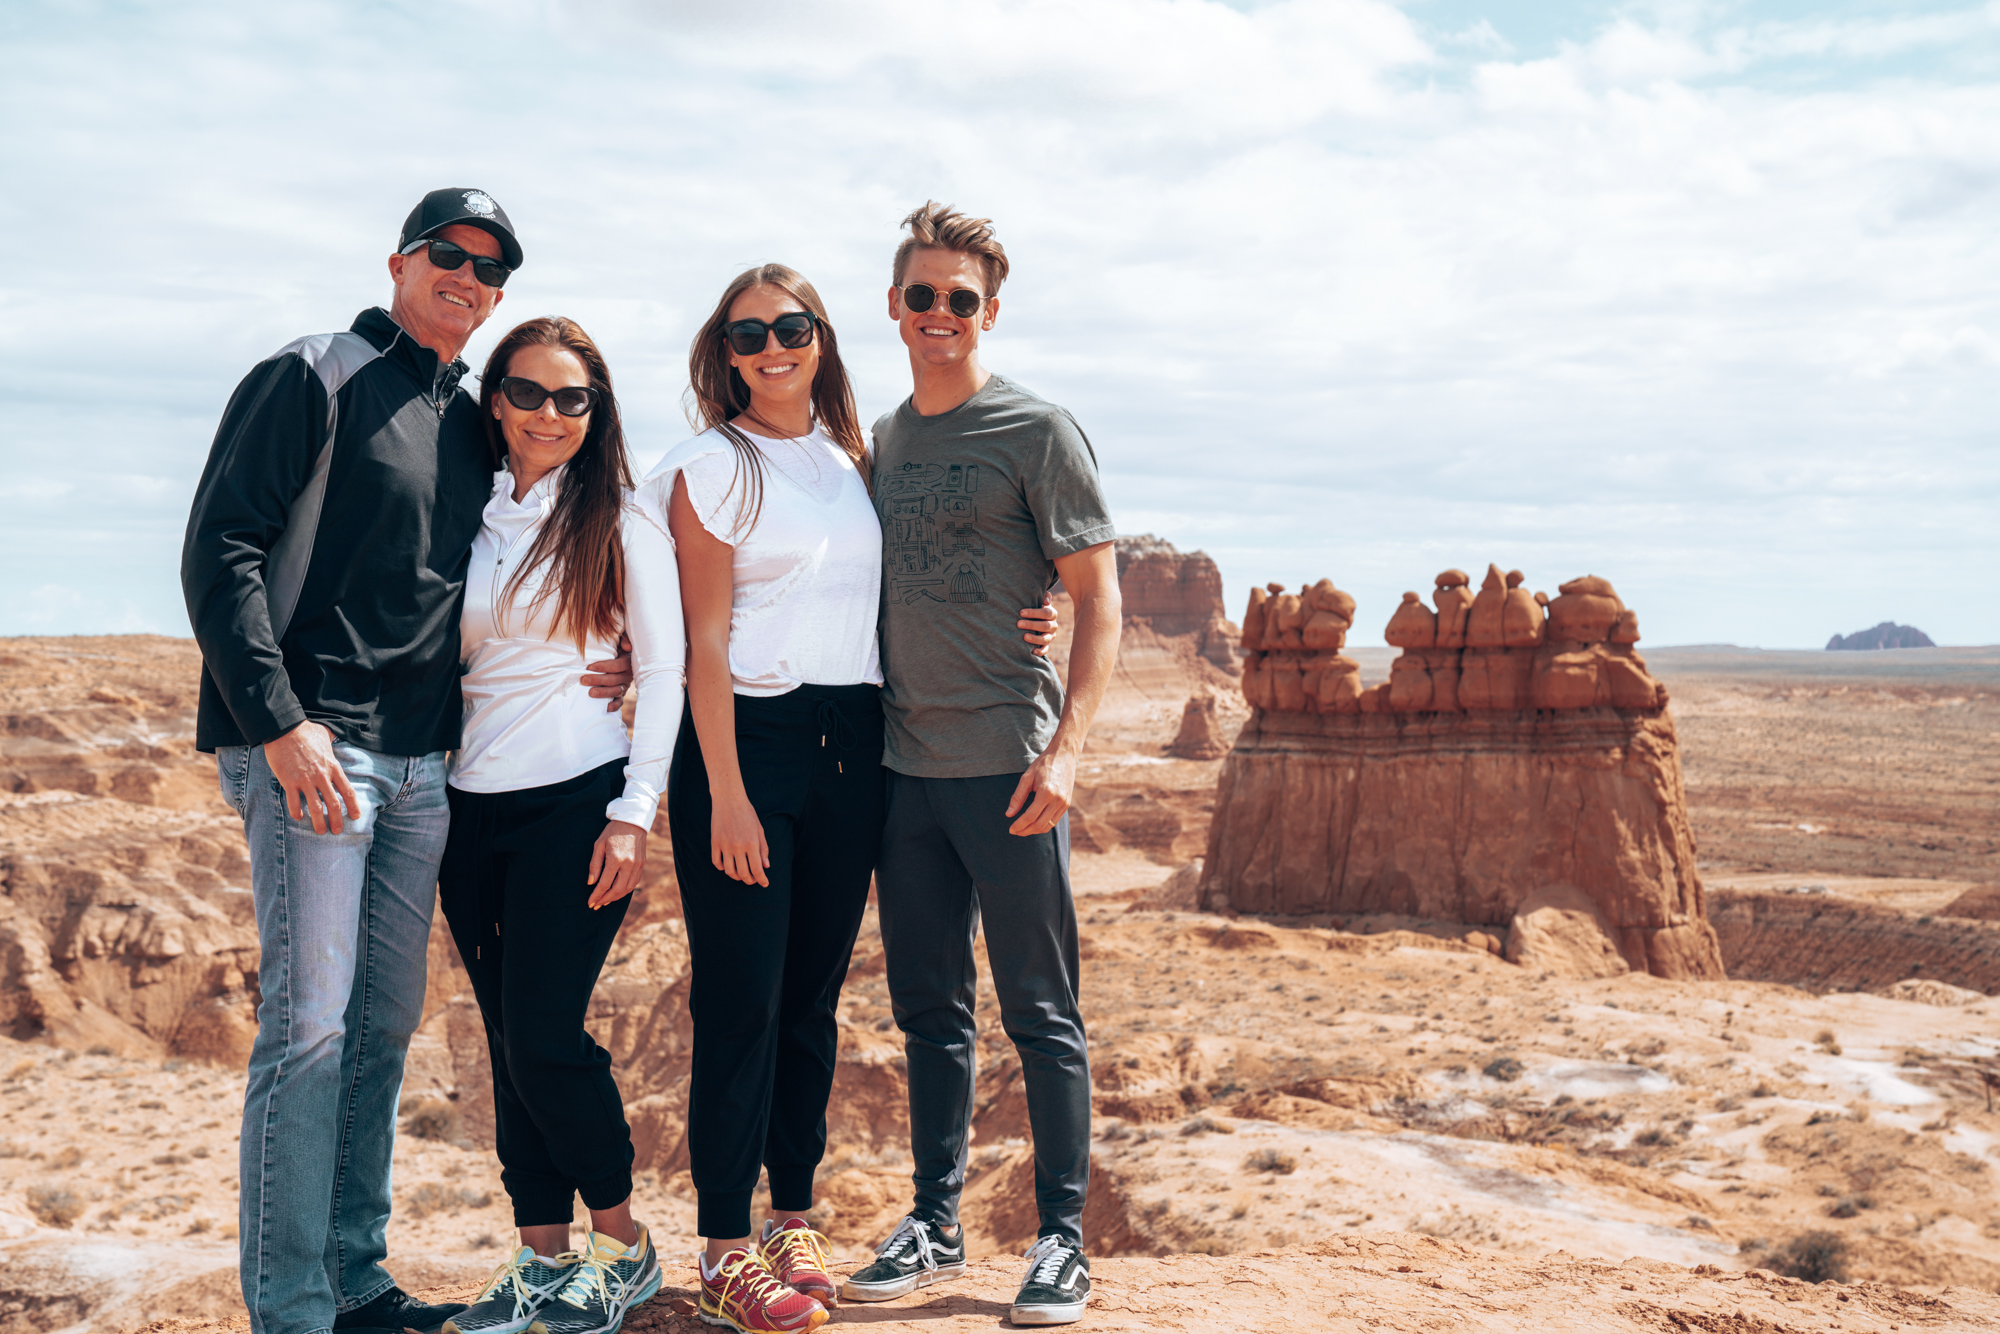 a family of four pose in on a cliff with red rock buttes and blue skies behind them.